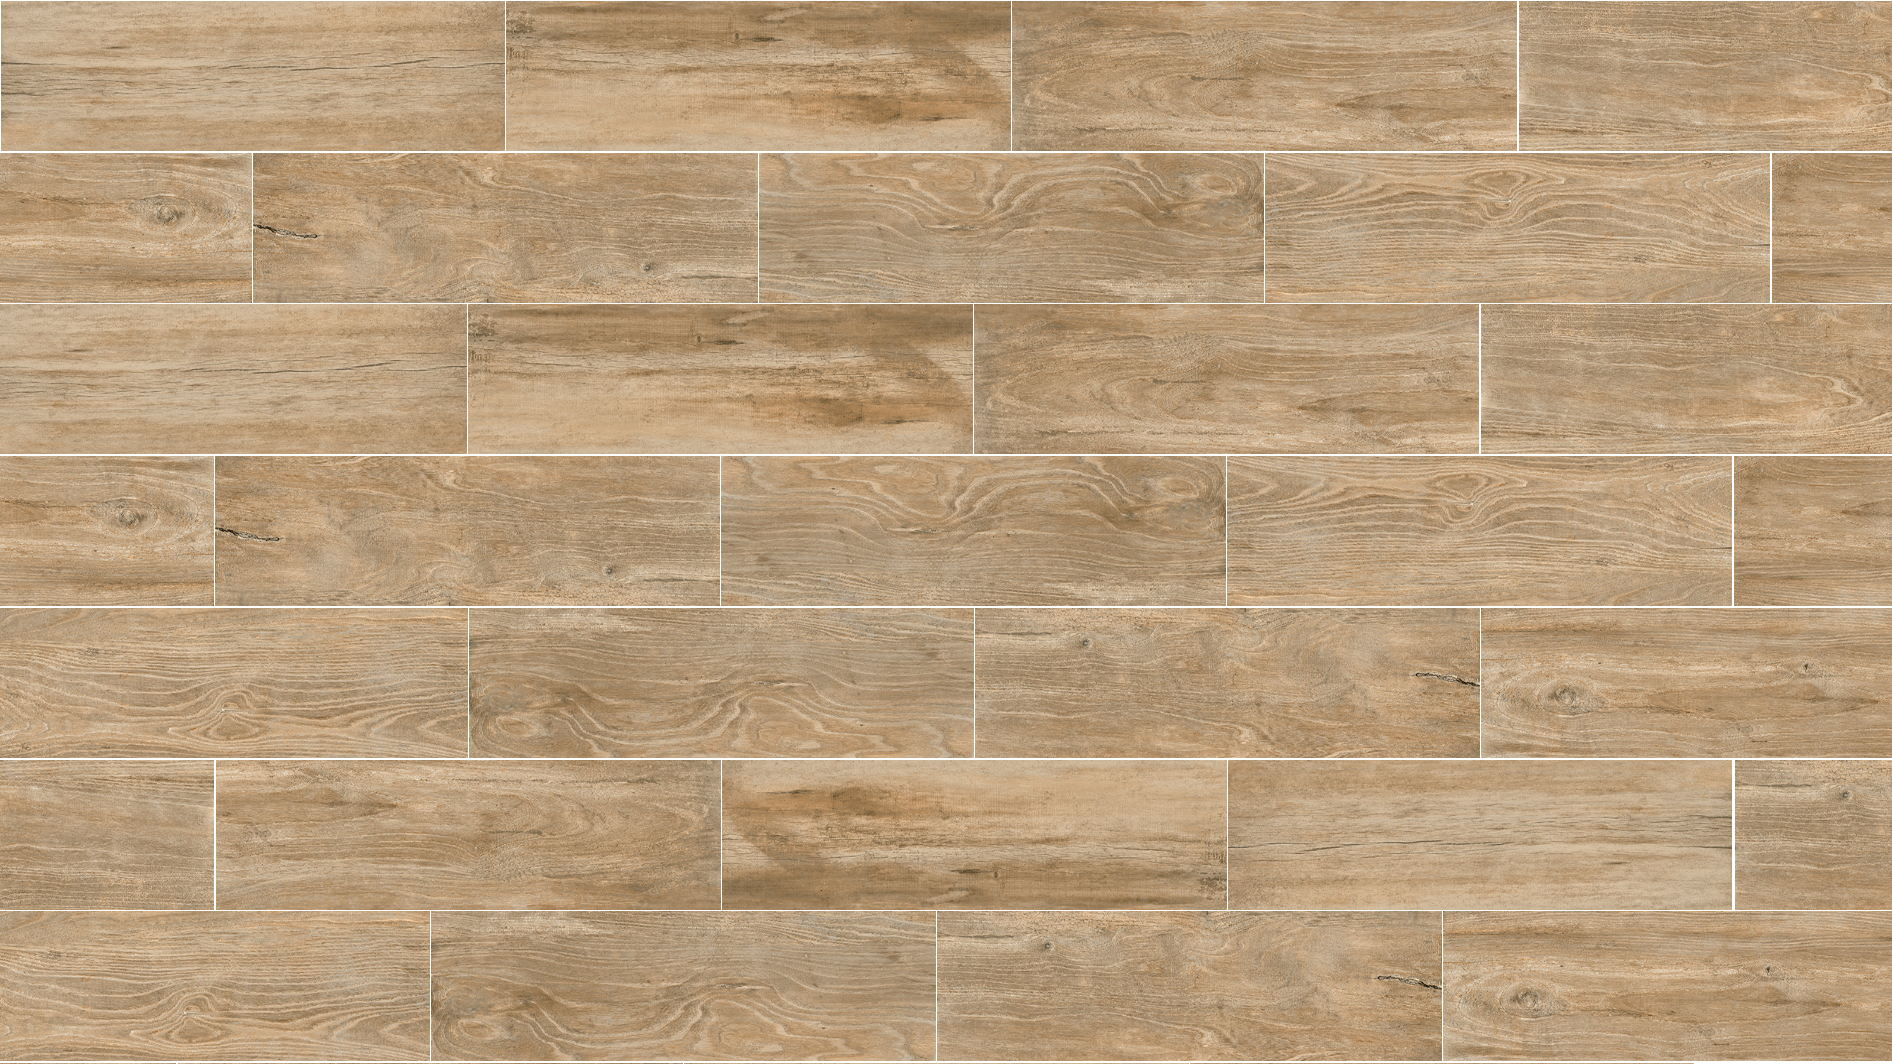 Porcellanato rectificado villagres 24 5 x 100 amendola for Pisos ceramicos de madera